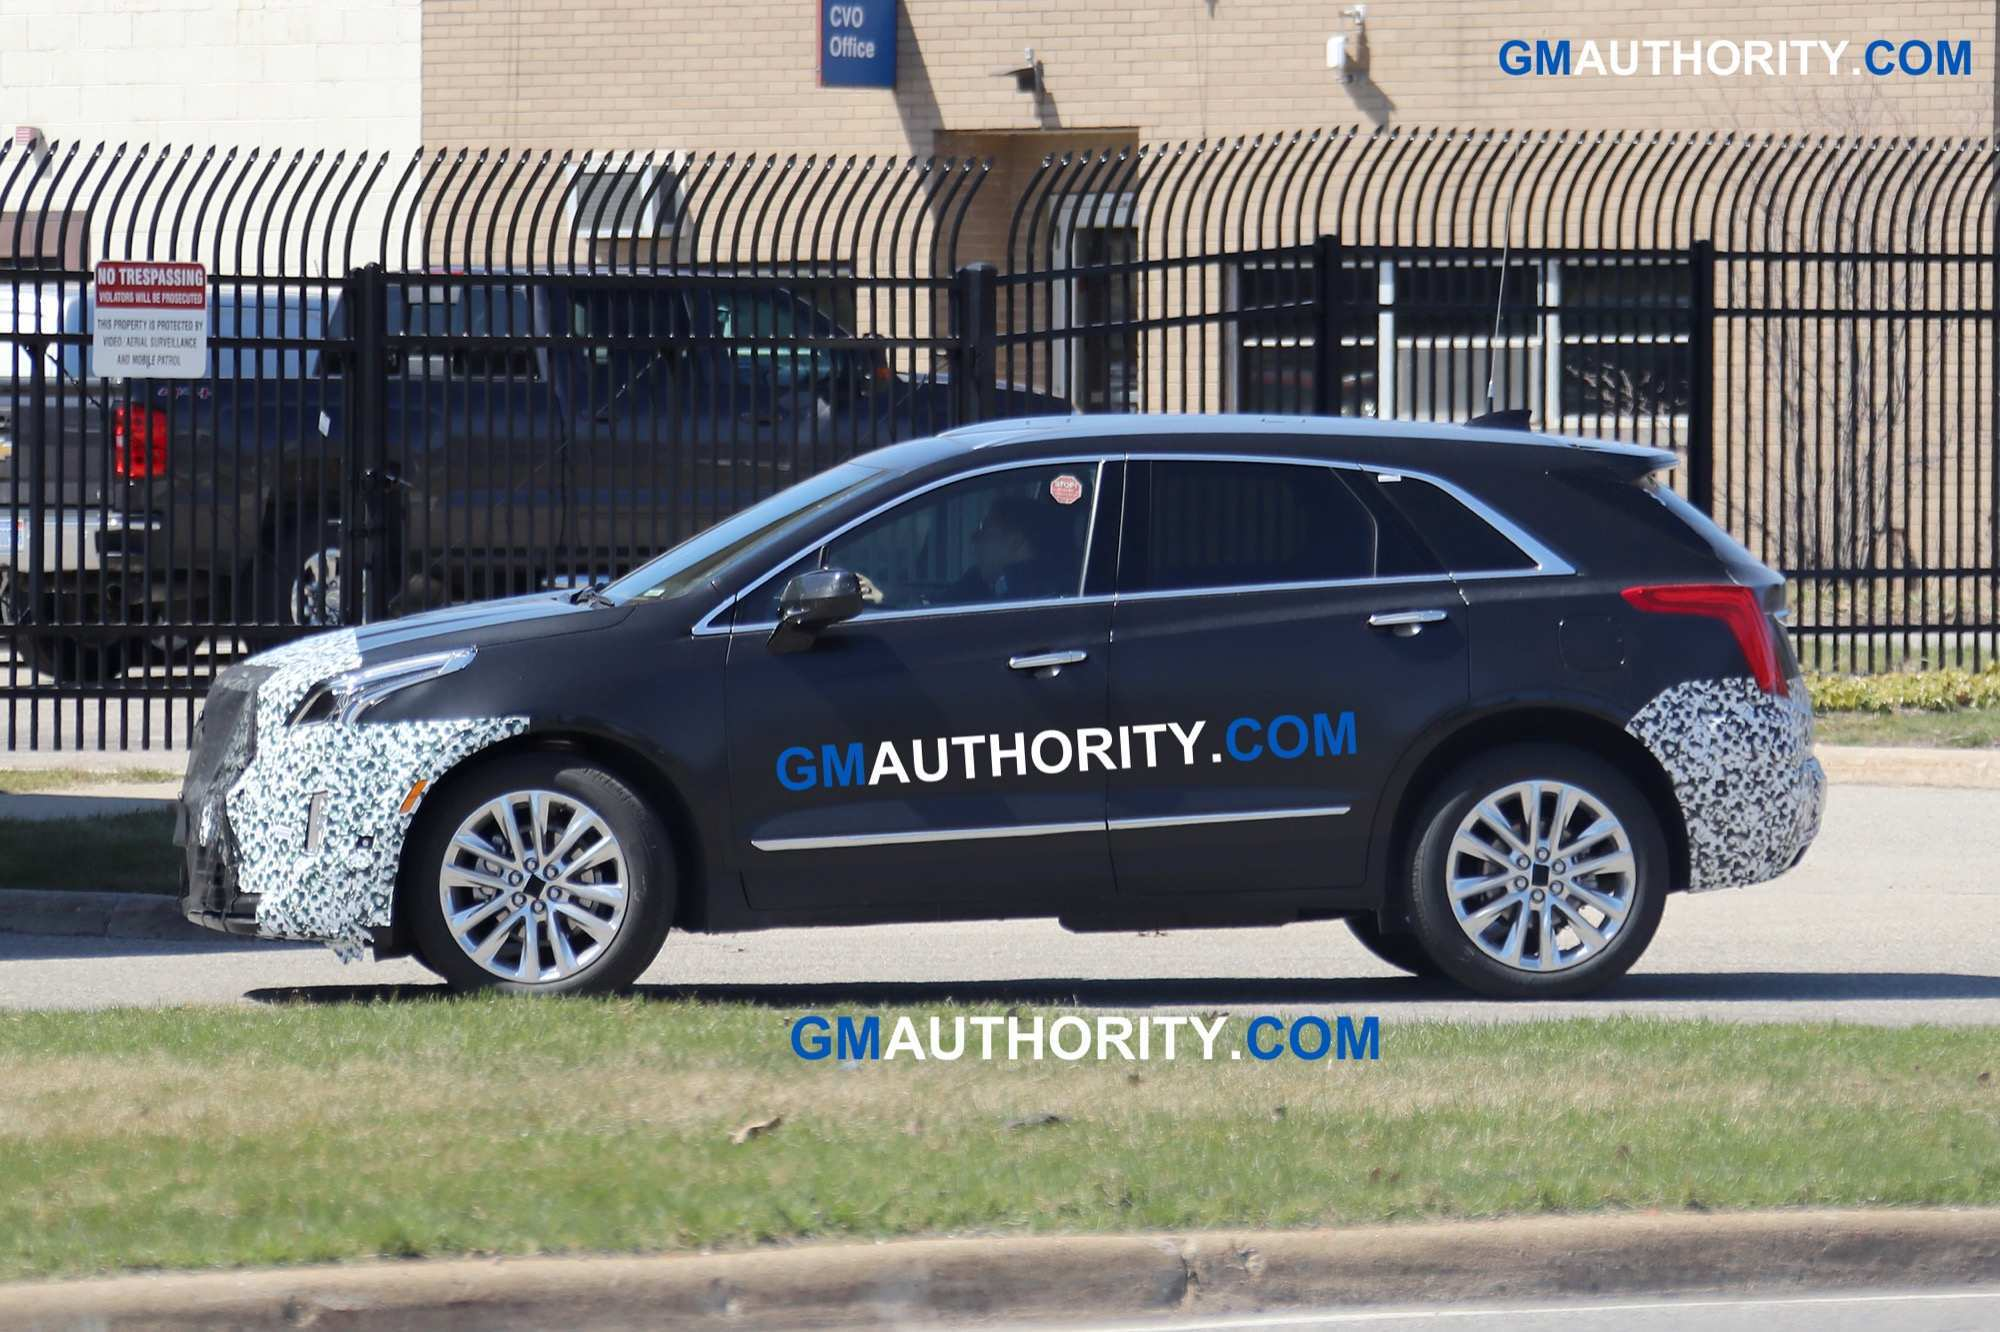 54 New 2020 Spy Shots Cadillac Xt5 Release Date And Concept